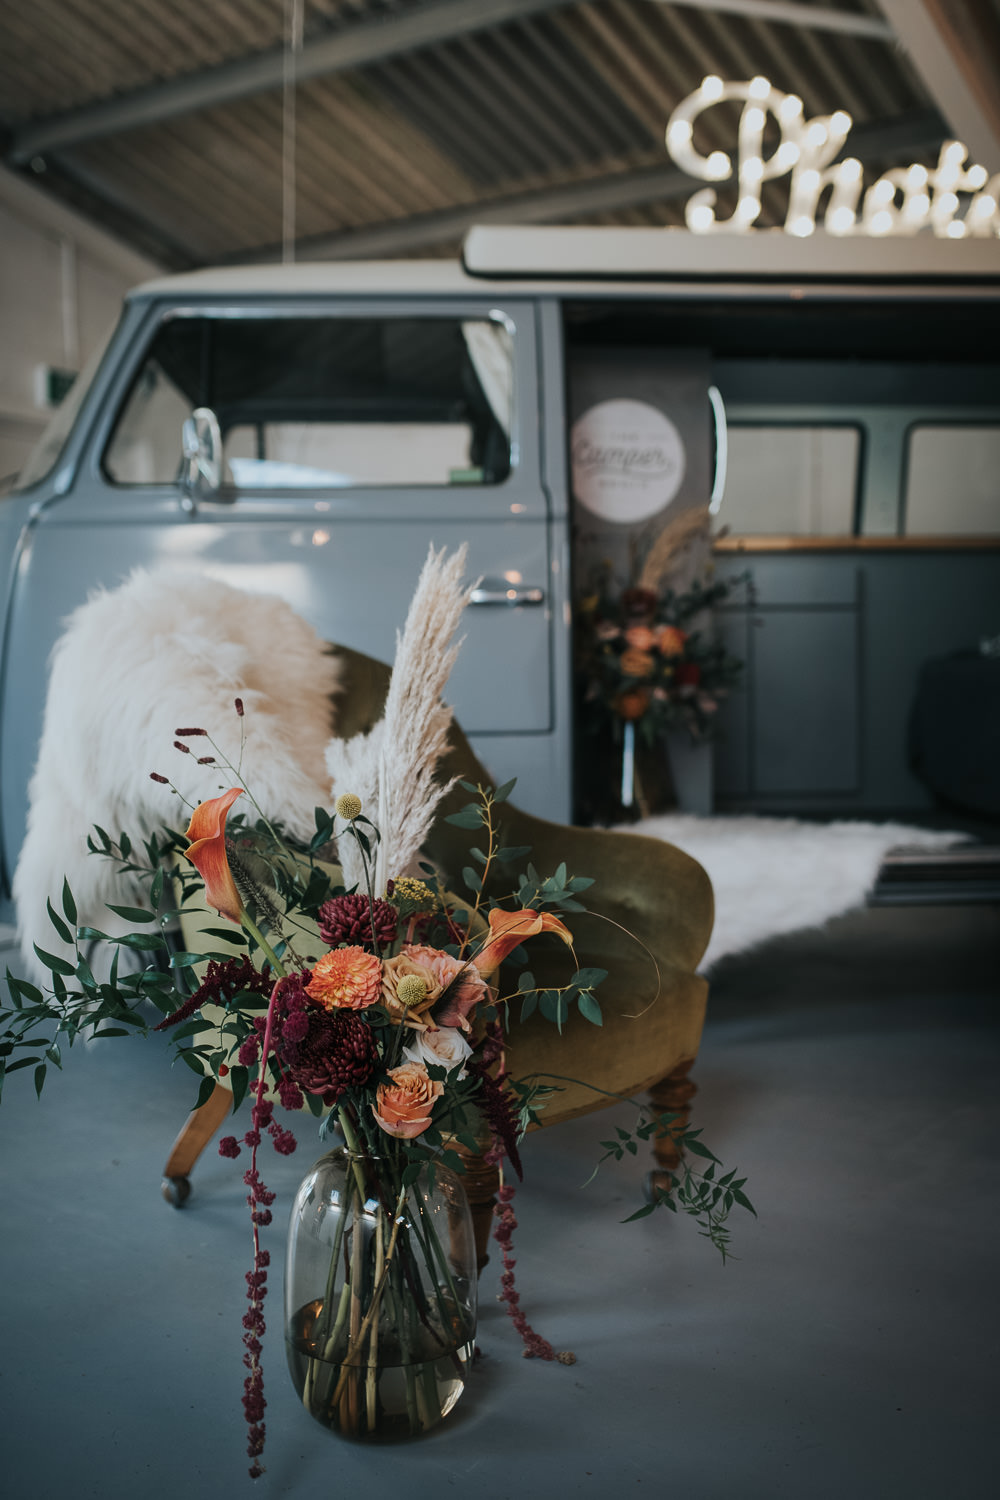 Flowers Mustard Tan Orange Burgundy Calla Lily Pampas Grass Dahlia Chrysanthemum 1970 Retro Mid Century Wedding Ideas Laura Martha Photography